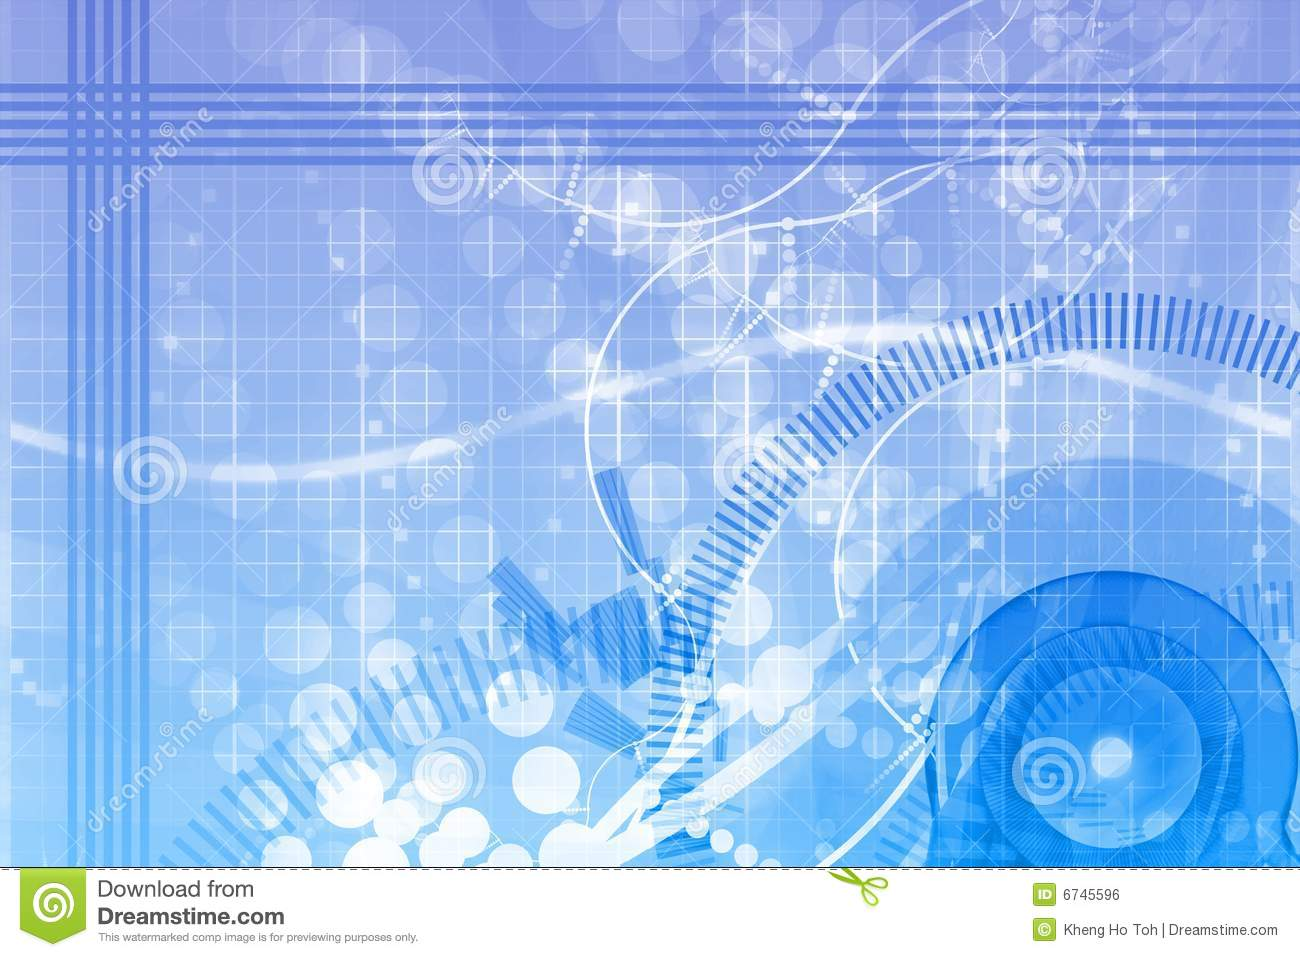 mechanical engineering science abstract background stock